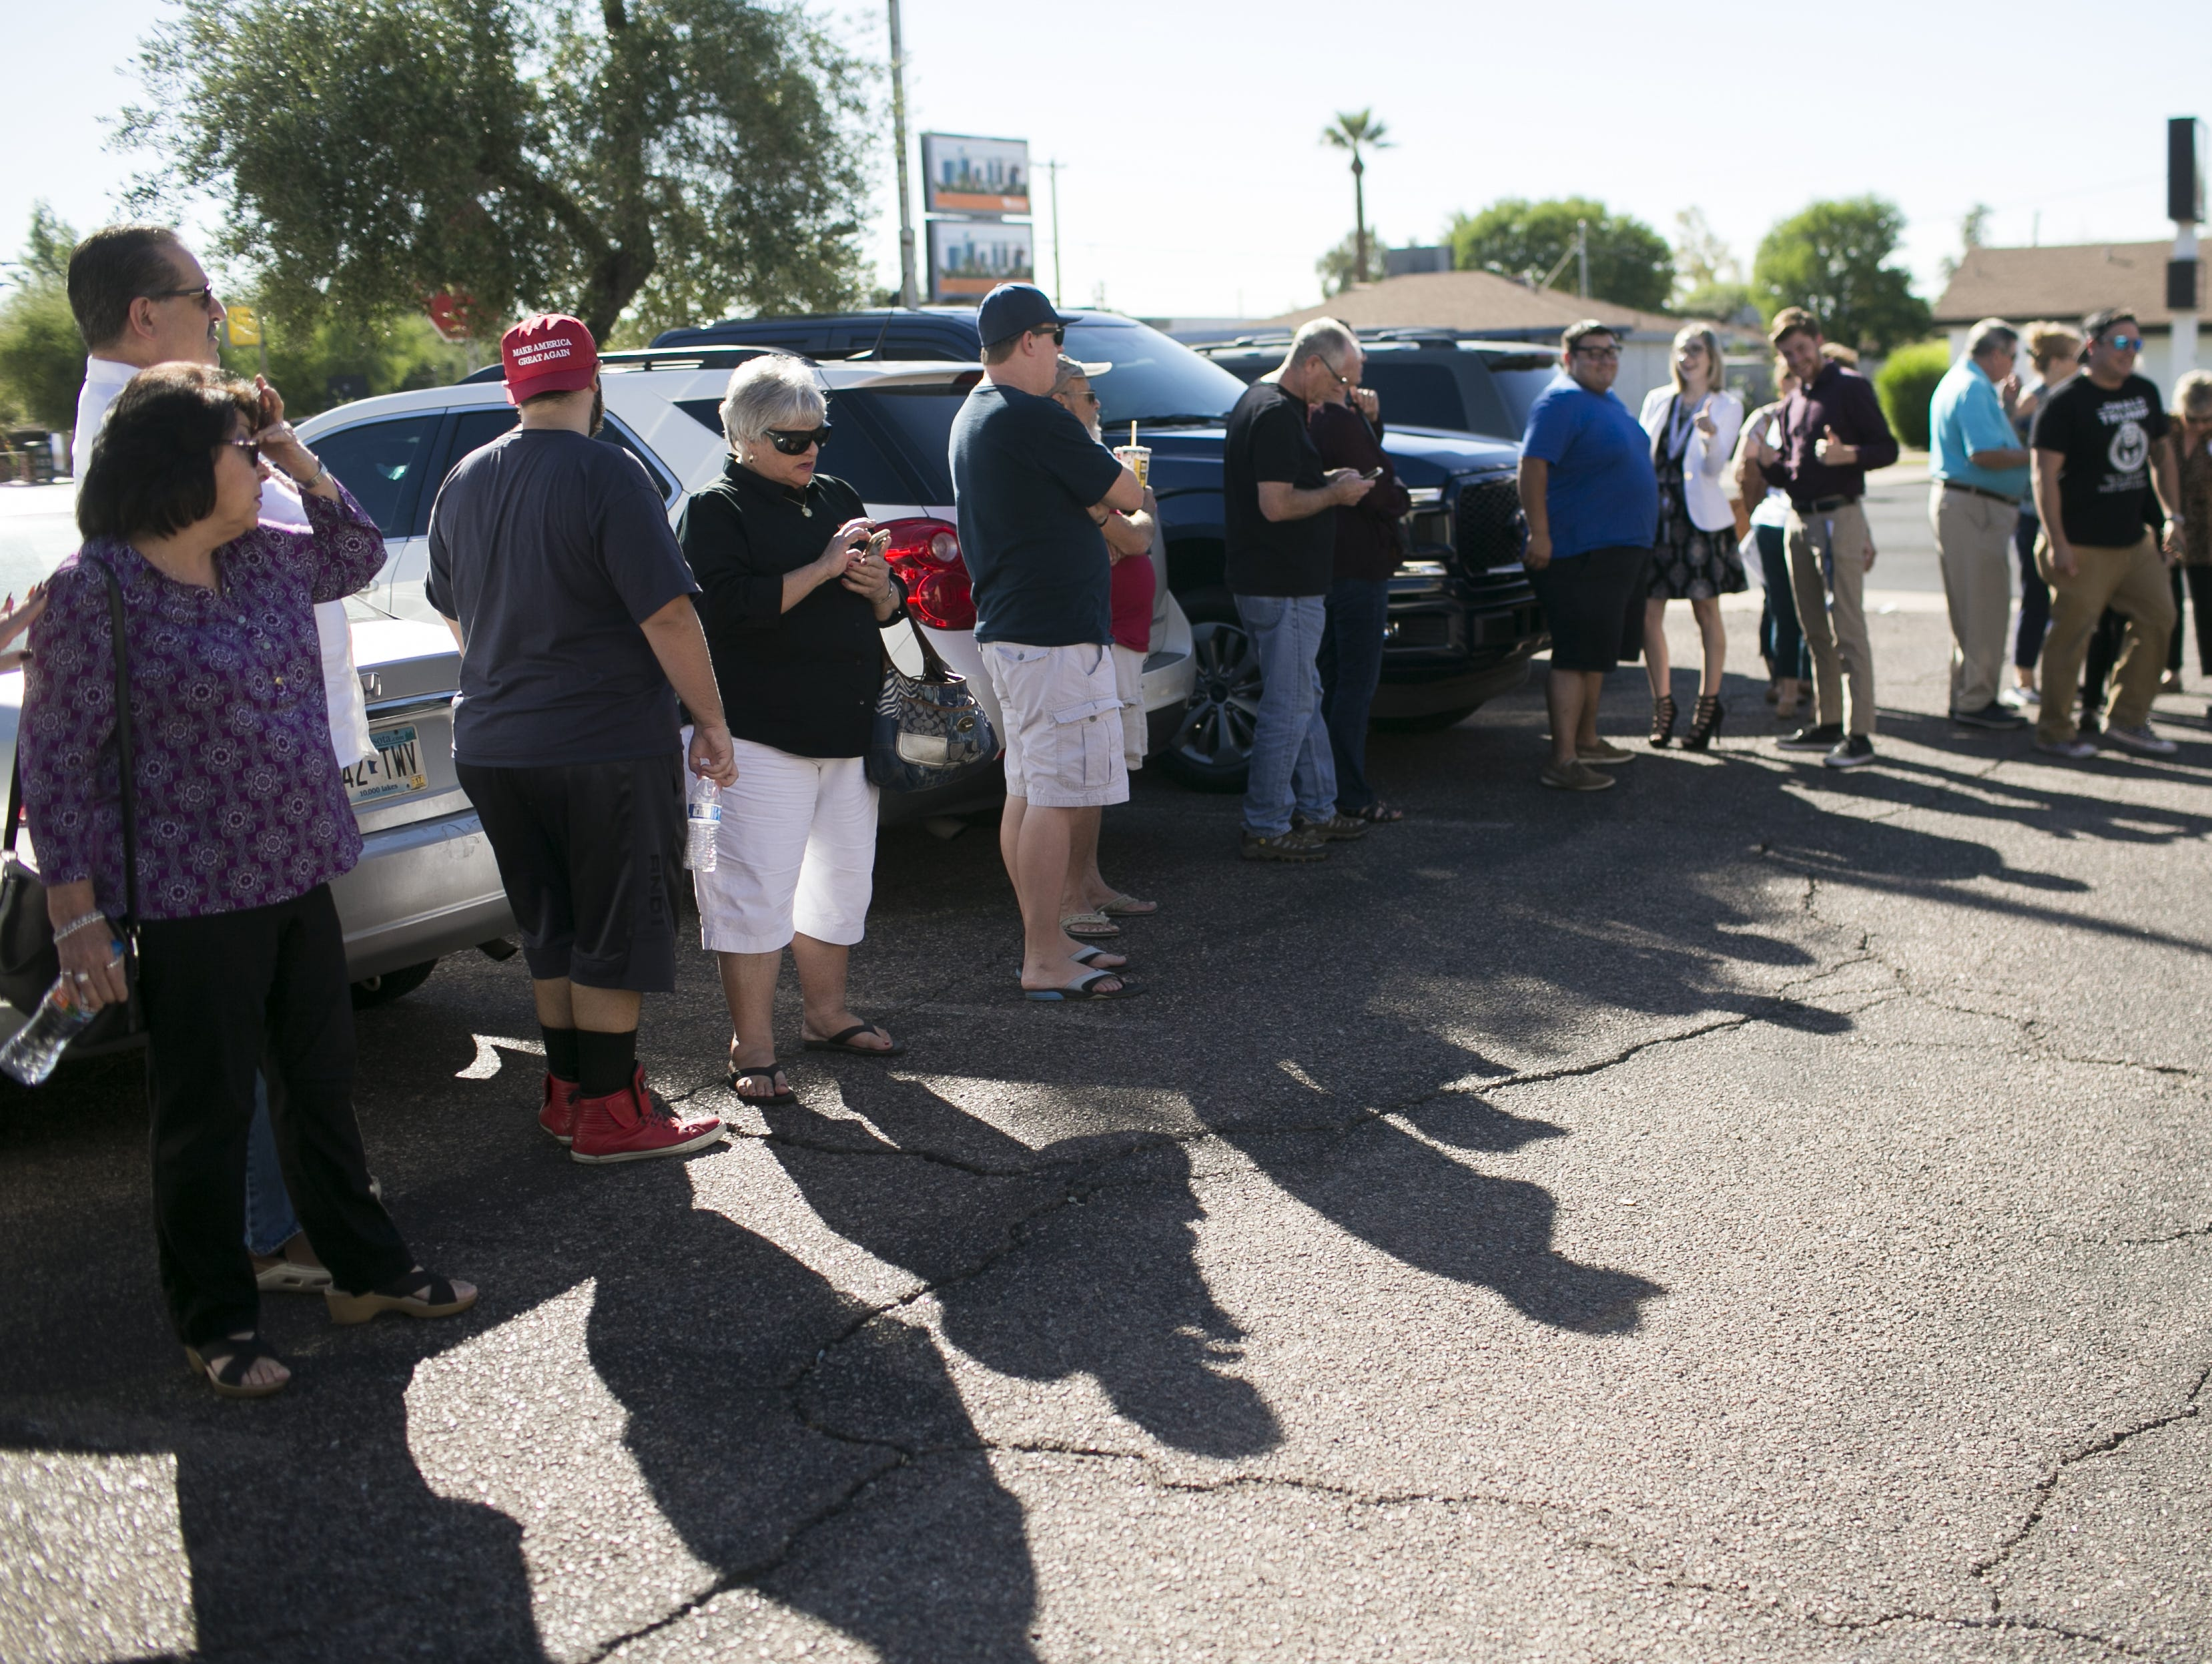 Republican supporters stand in line to see U.S. Senate candidate Martha McSally and Sen. Lindsey Graham, R-S.C. speak at the Arizona GOP headquarters in Phoenix, Ariz. on Oct. 27, 2018.